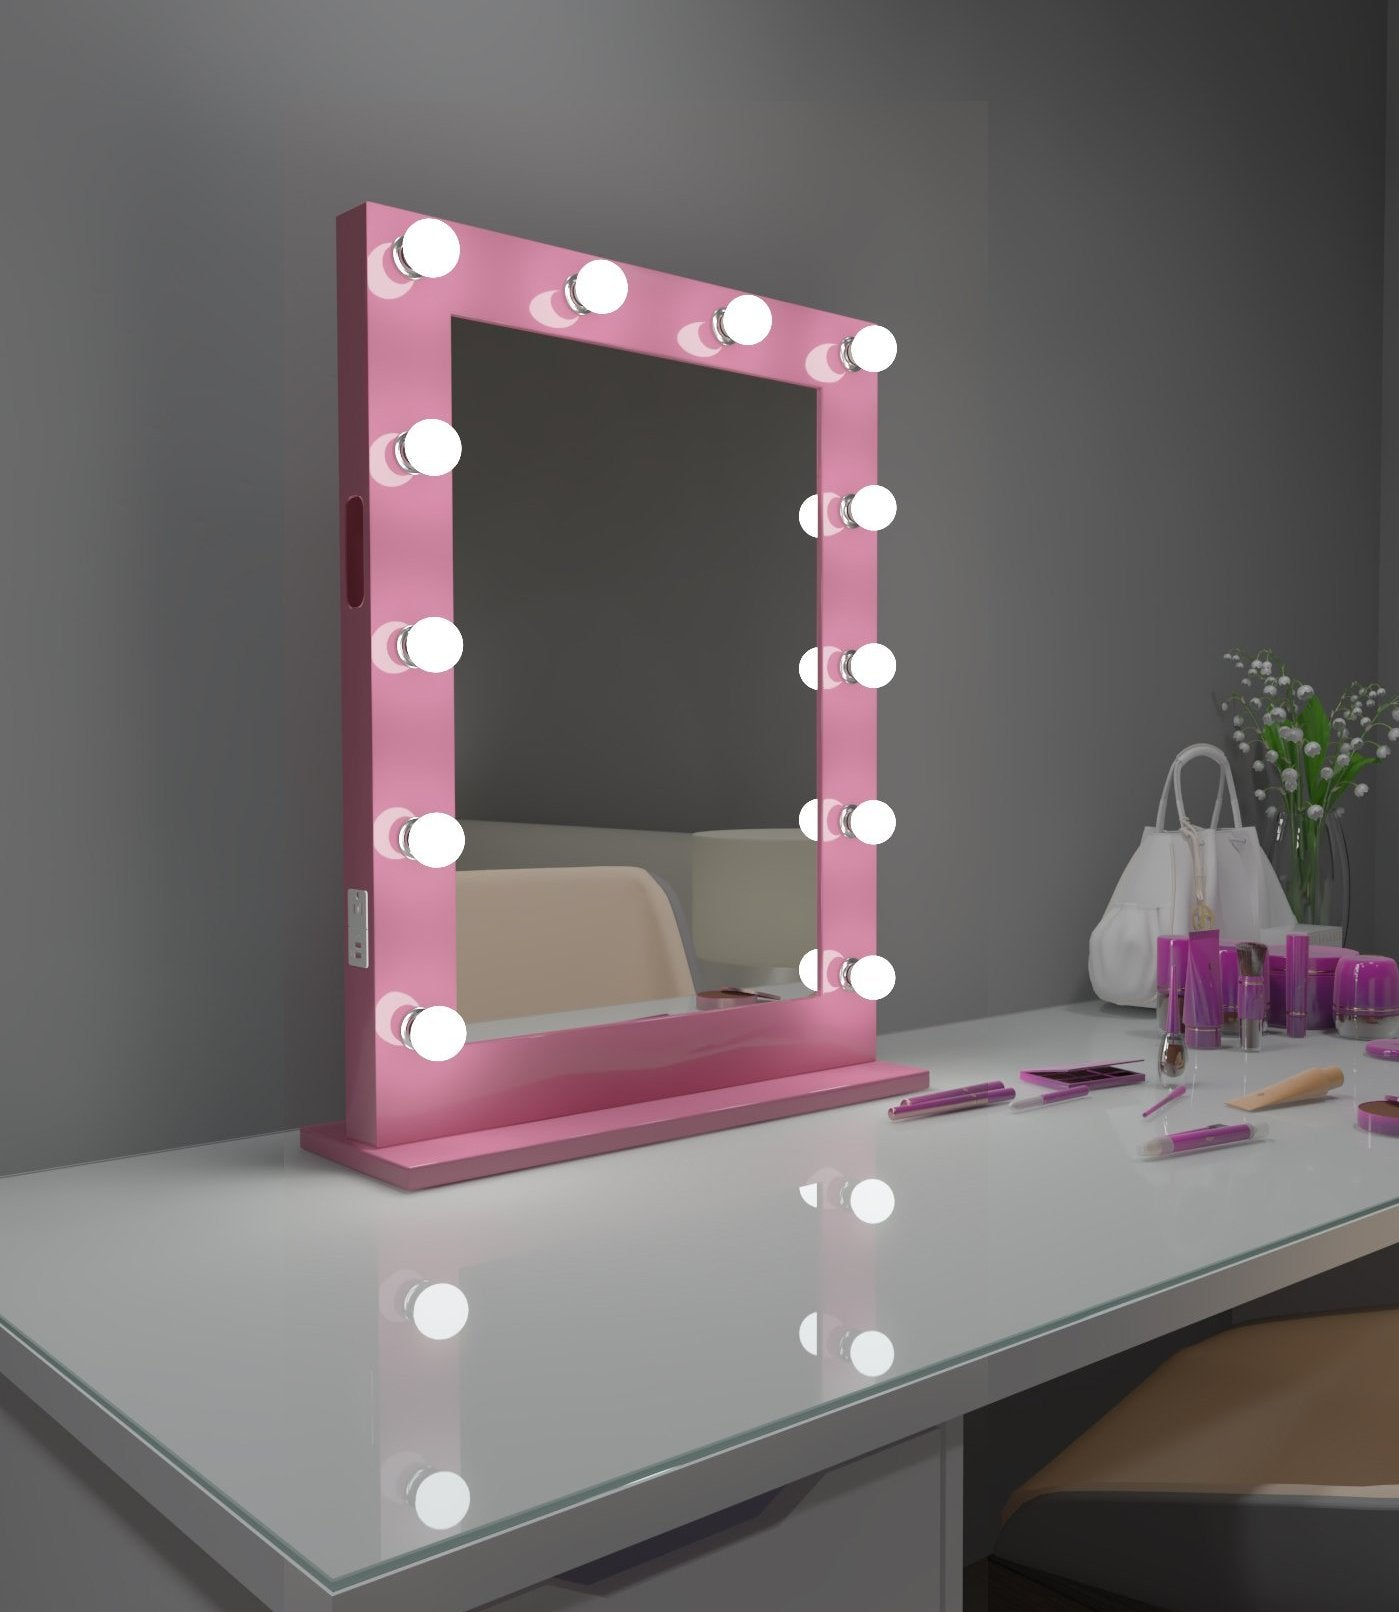 Hollywood Mirror Marylin 24 x 32 in Pink with Bluetooth